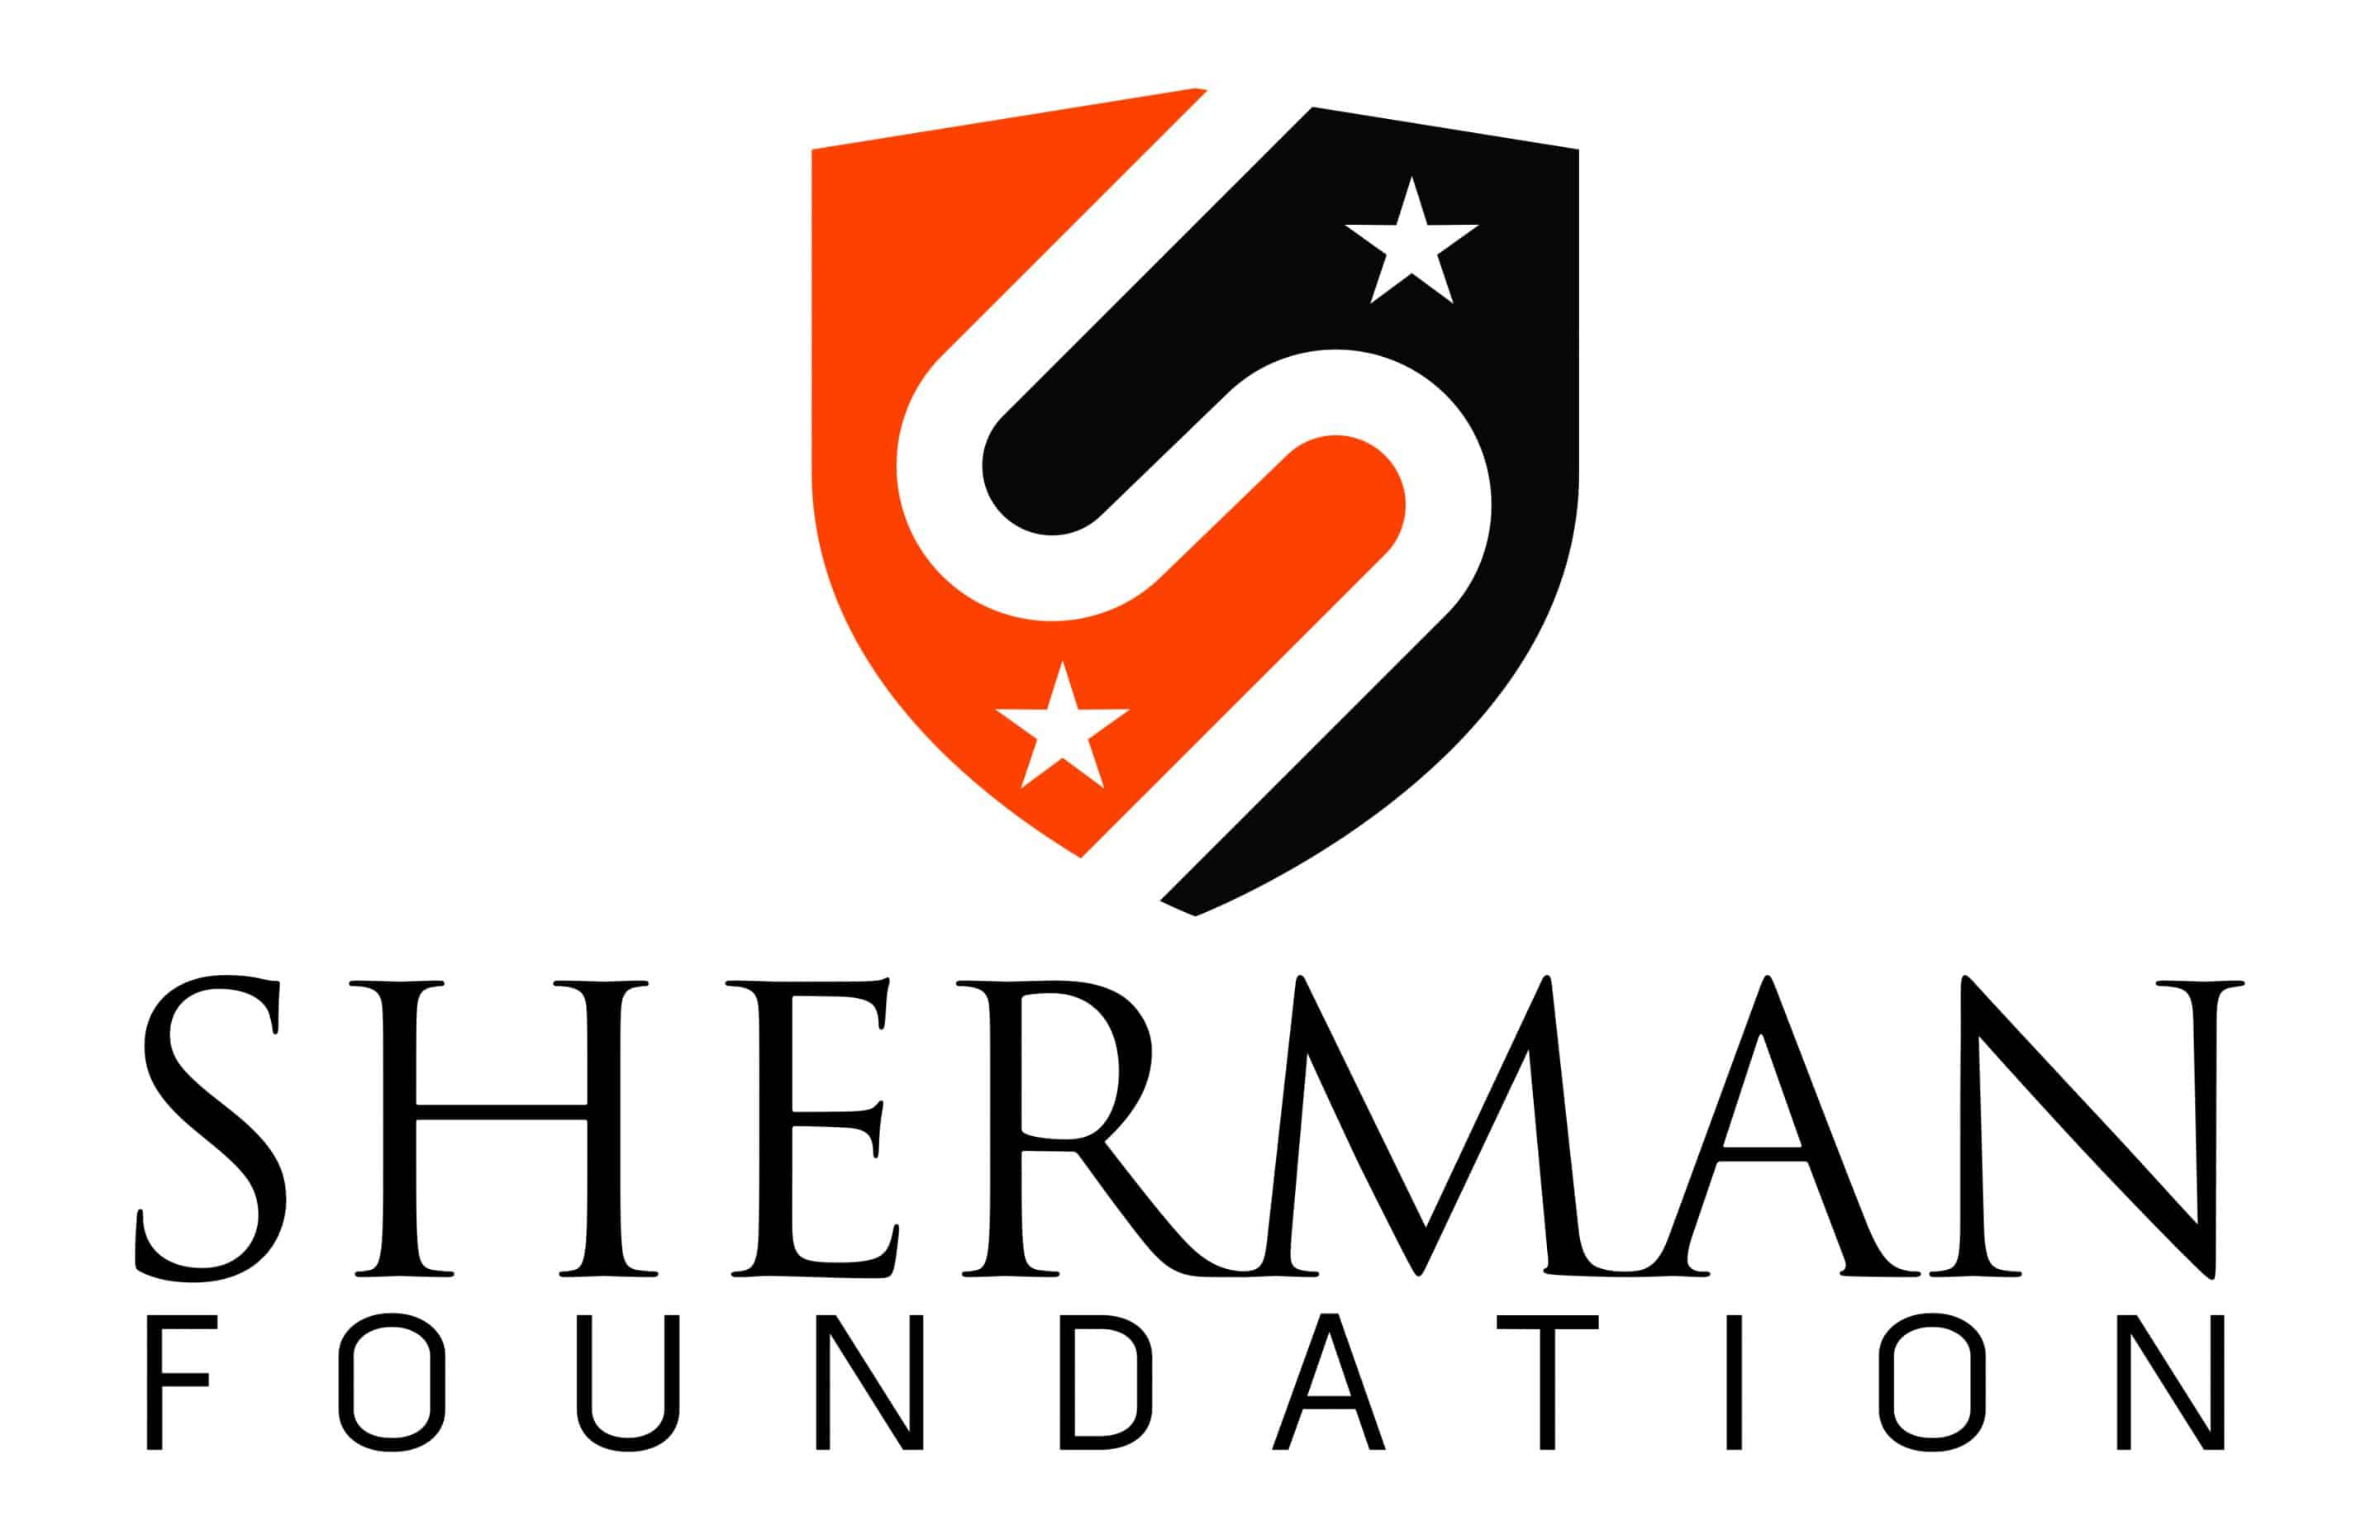 The Sherman Foundation